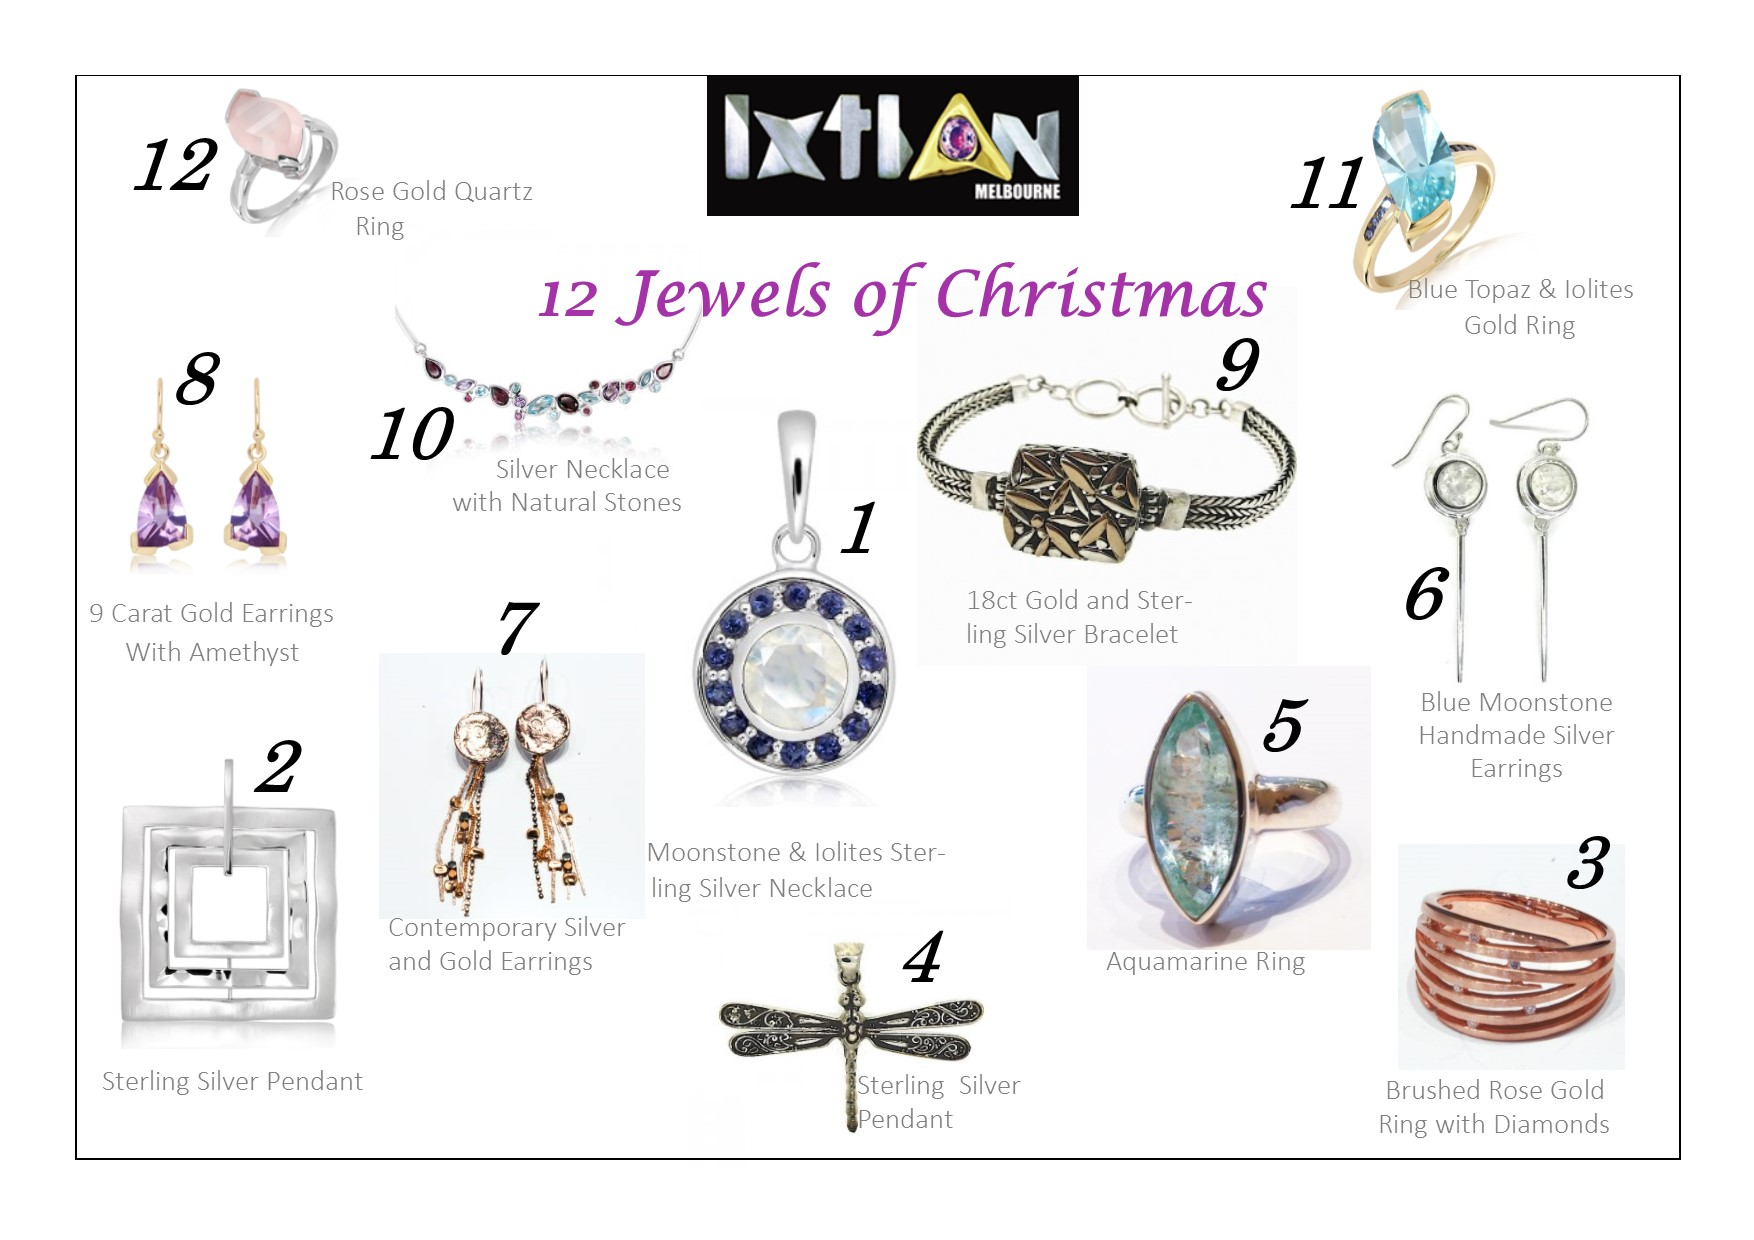 12 Great Christmas ideas From Ixtlan Melbourne